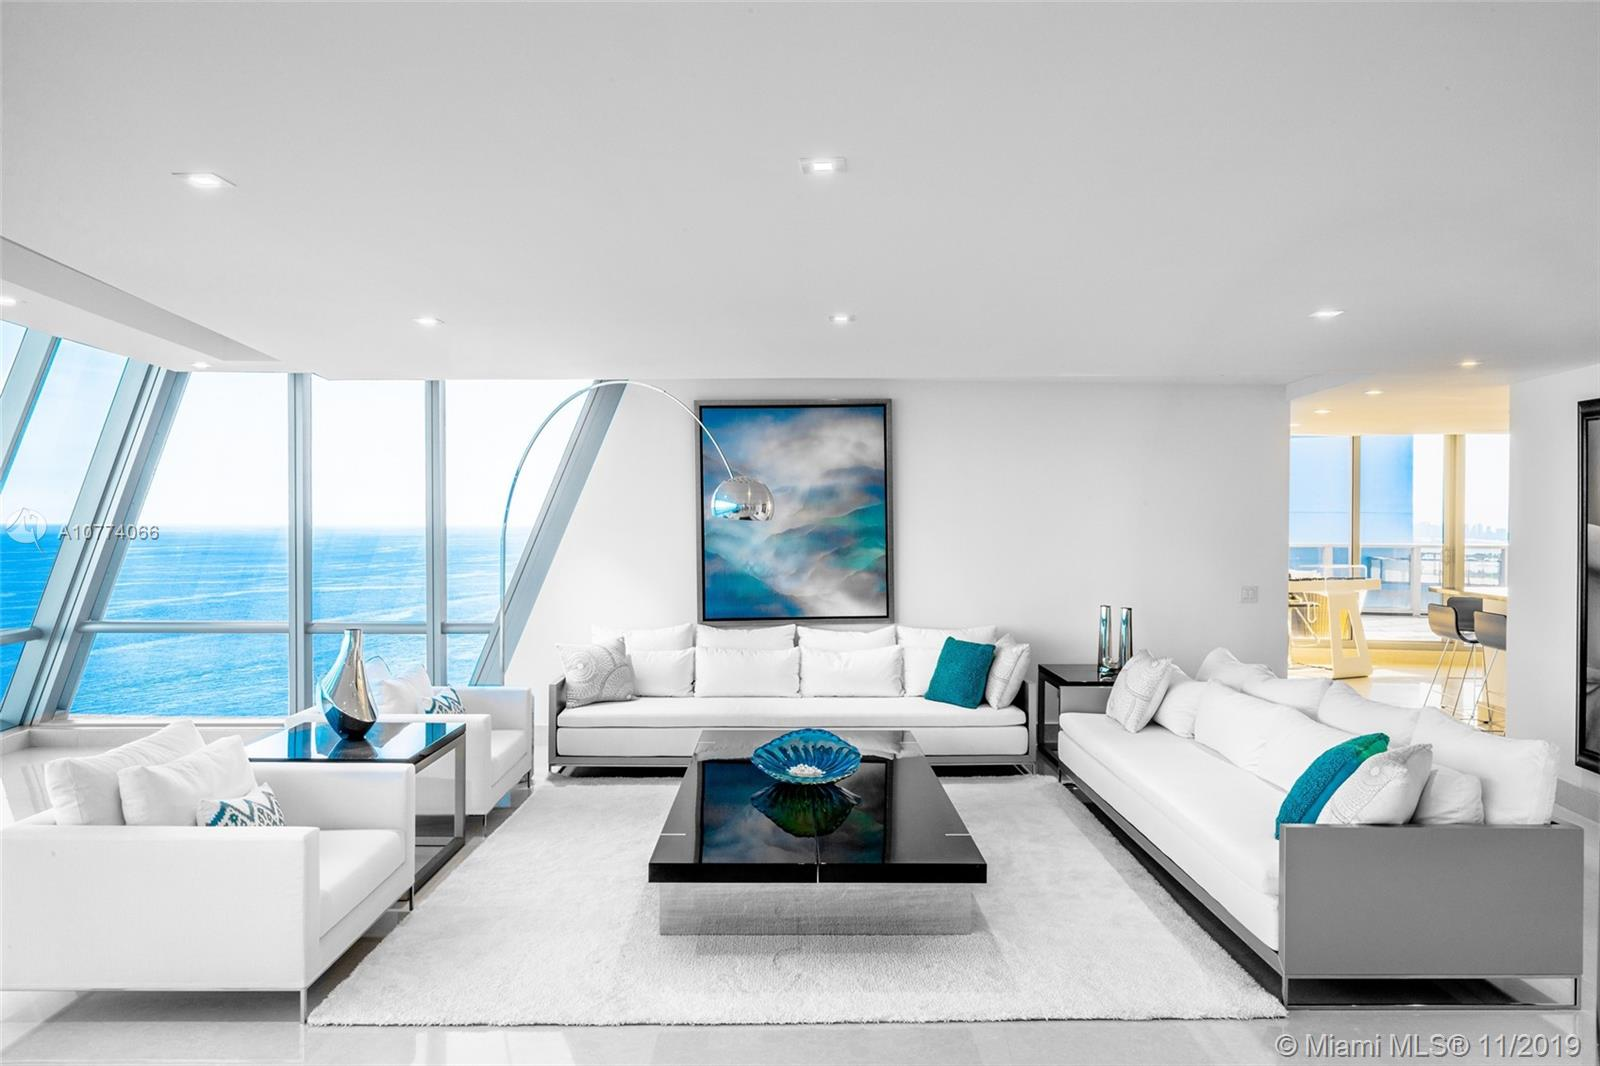 17121 Collins Ave, Unit #4803 Luxury Real Estate